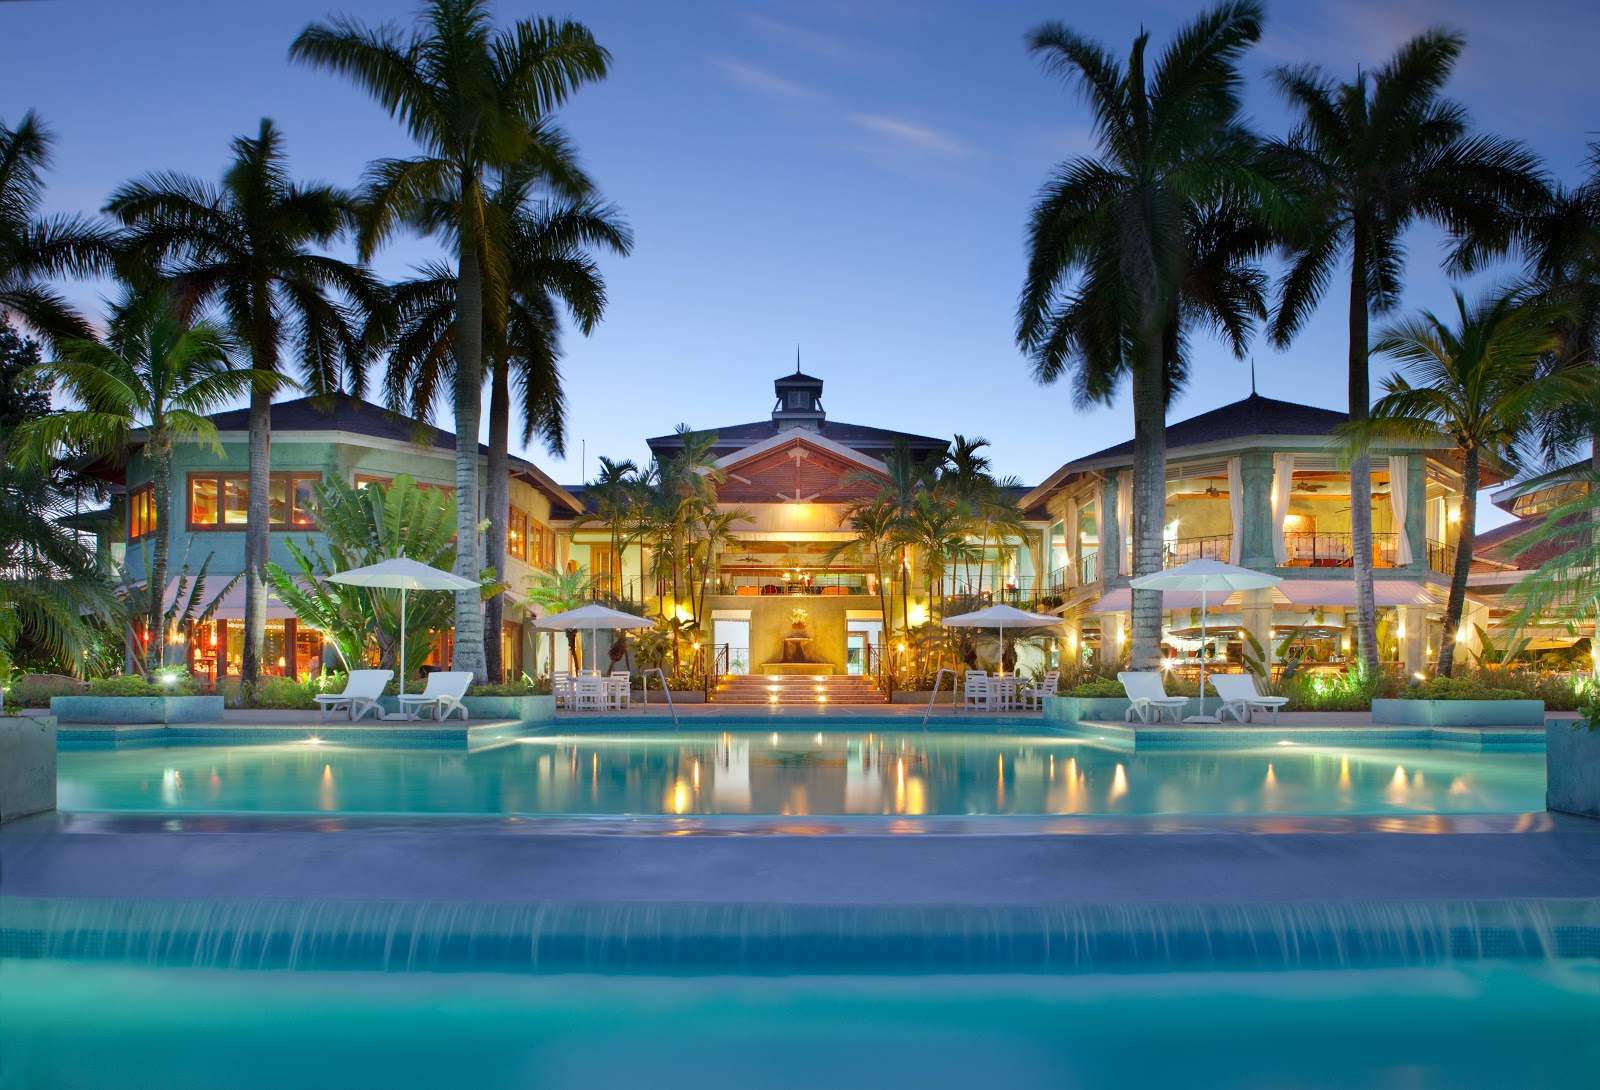 World visits top 5 best resorts in united states top 5 best resorts in united states publicscrutiny Gallery